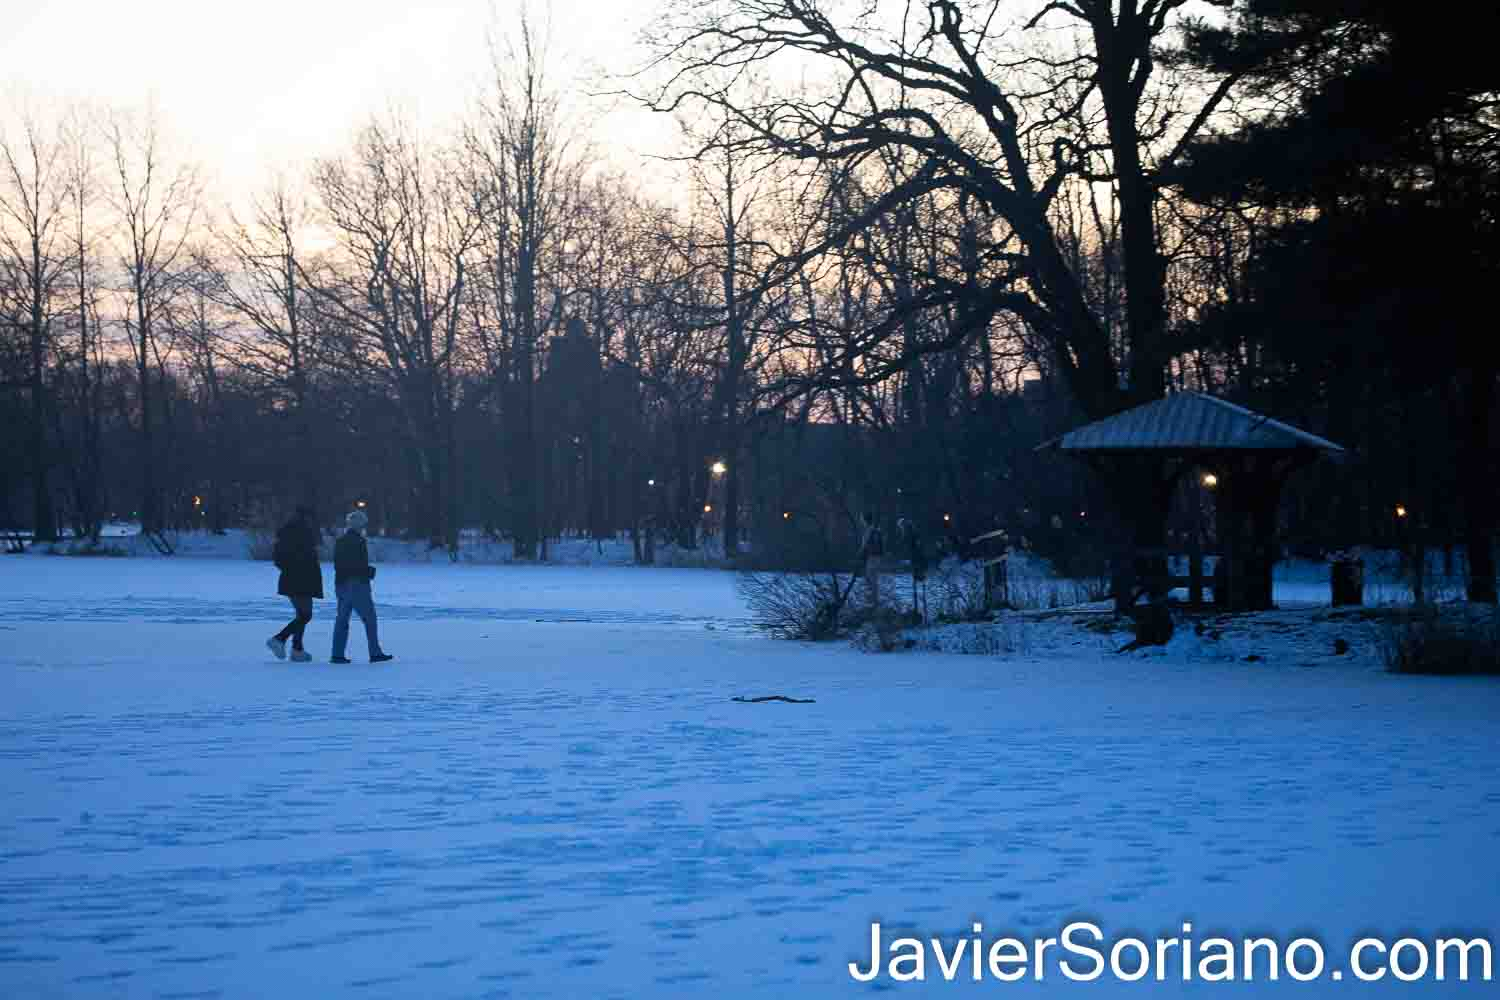 Sunday, February 21, 2021. Brooklyn, New York City – Women walking on a frozen lake in Prospect Park. Photo by Javier Soriano/www.JavierSoriano.com